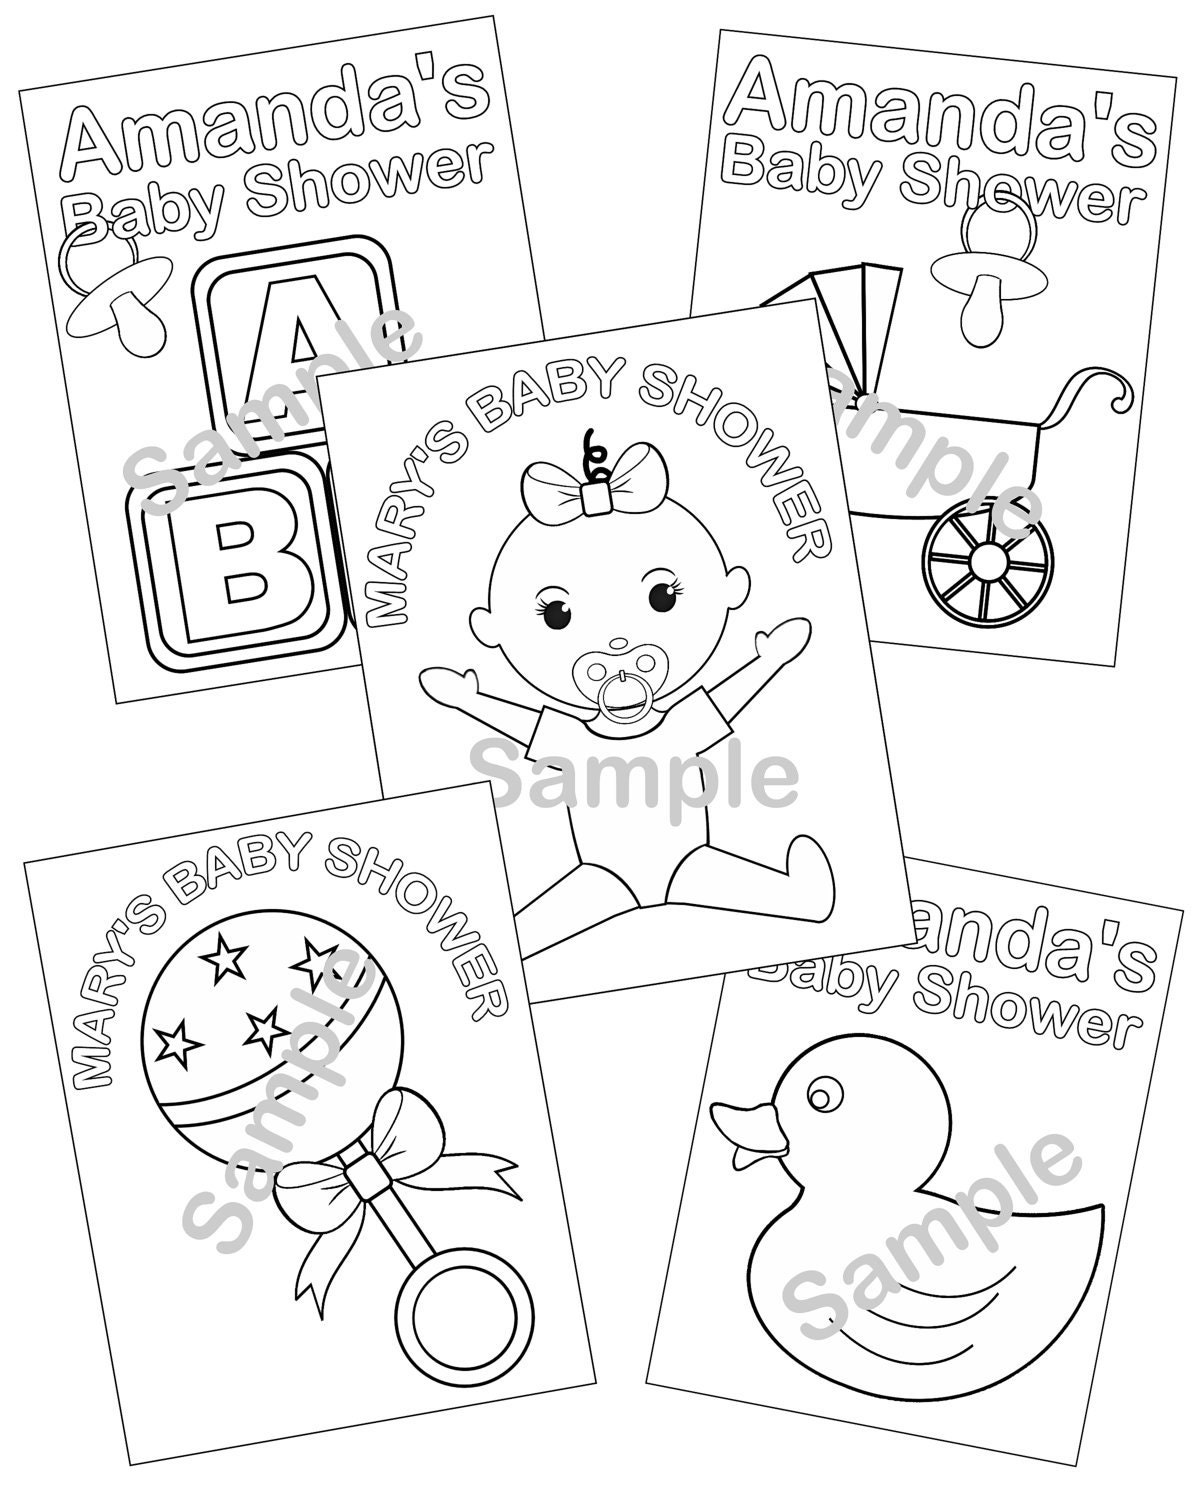 5 Personalized Printable Baby Shower